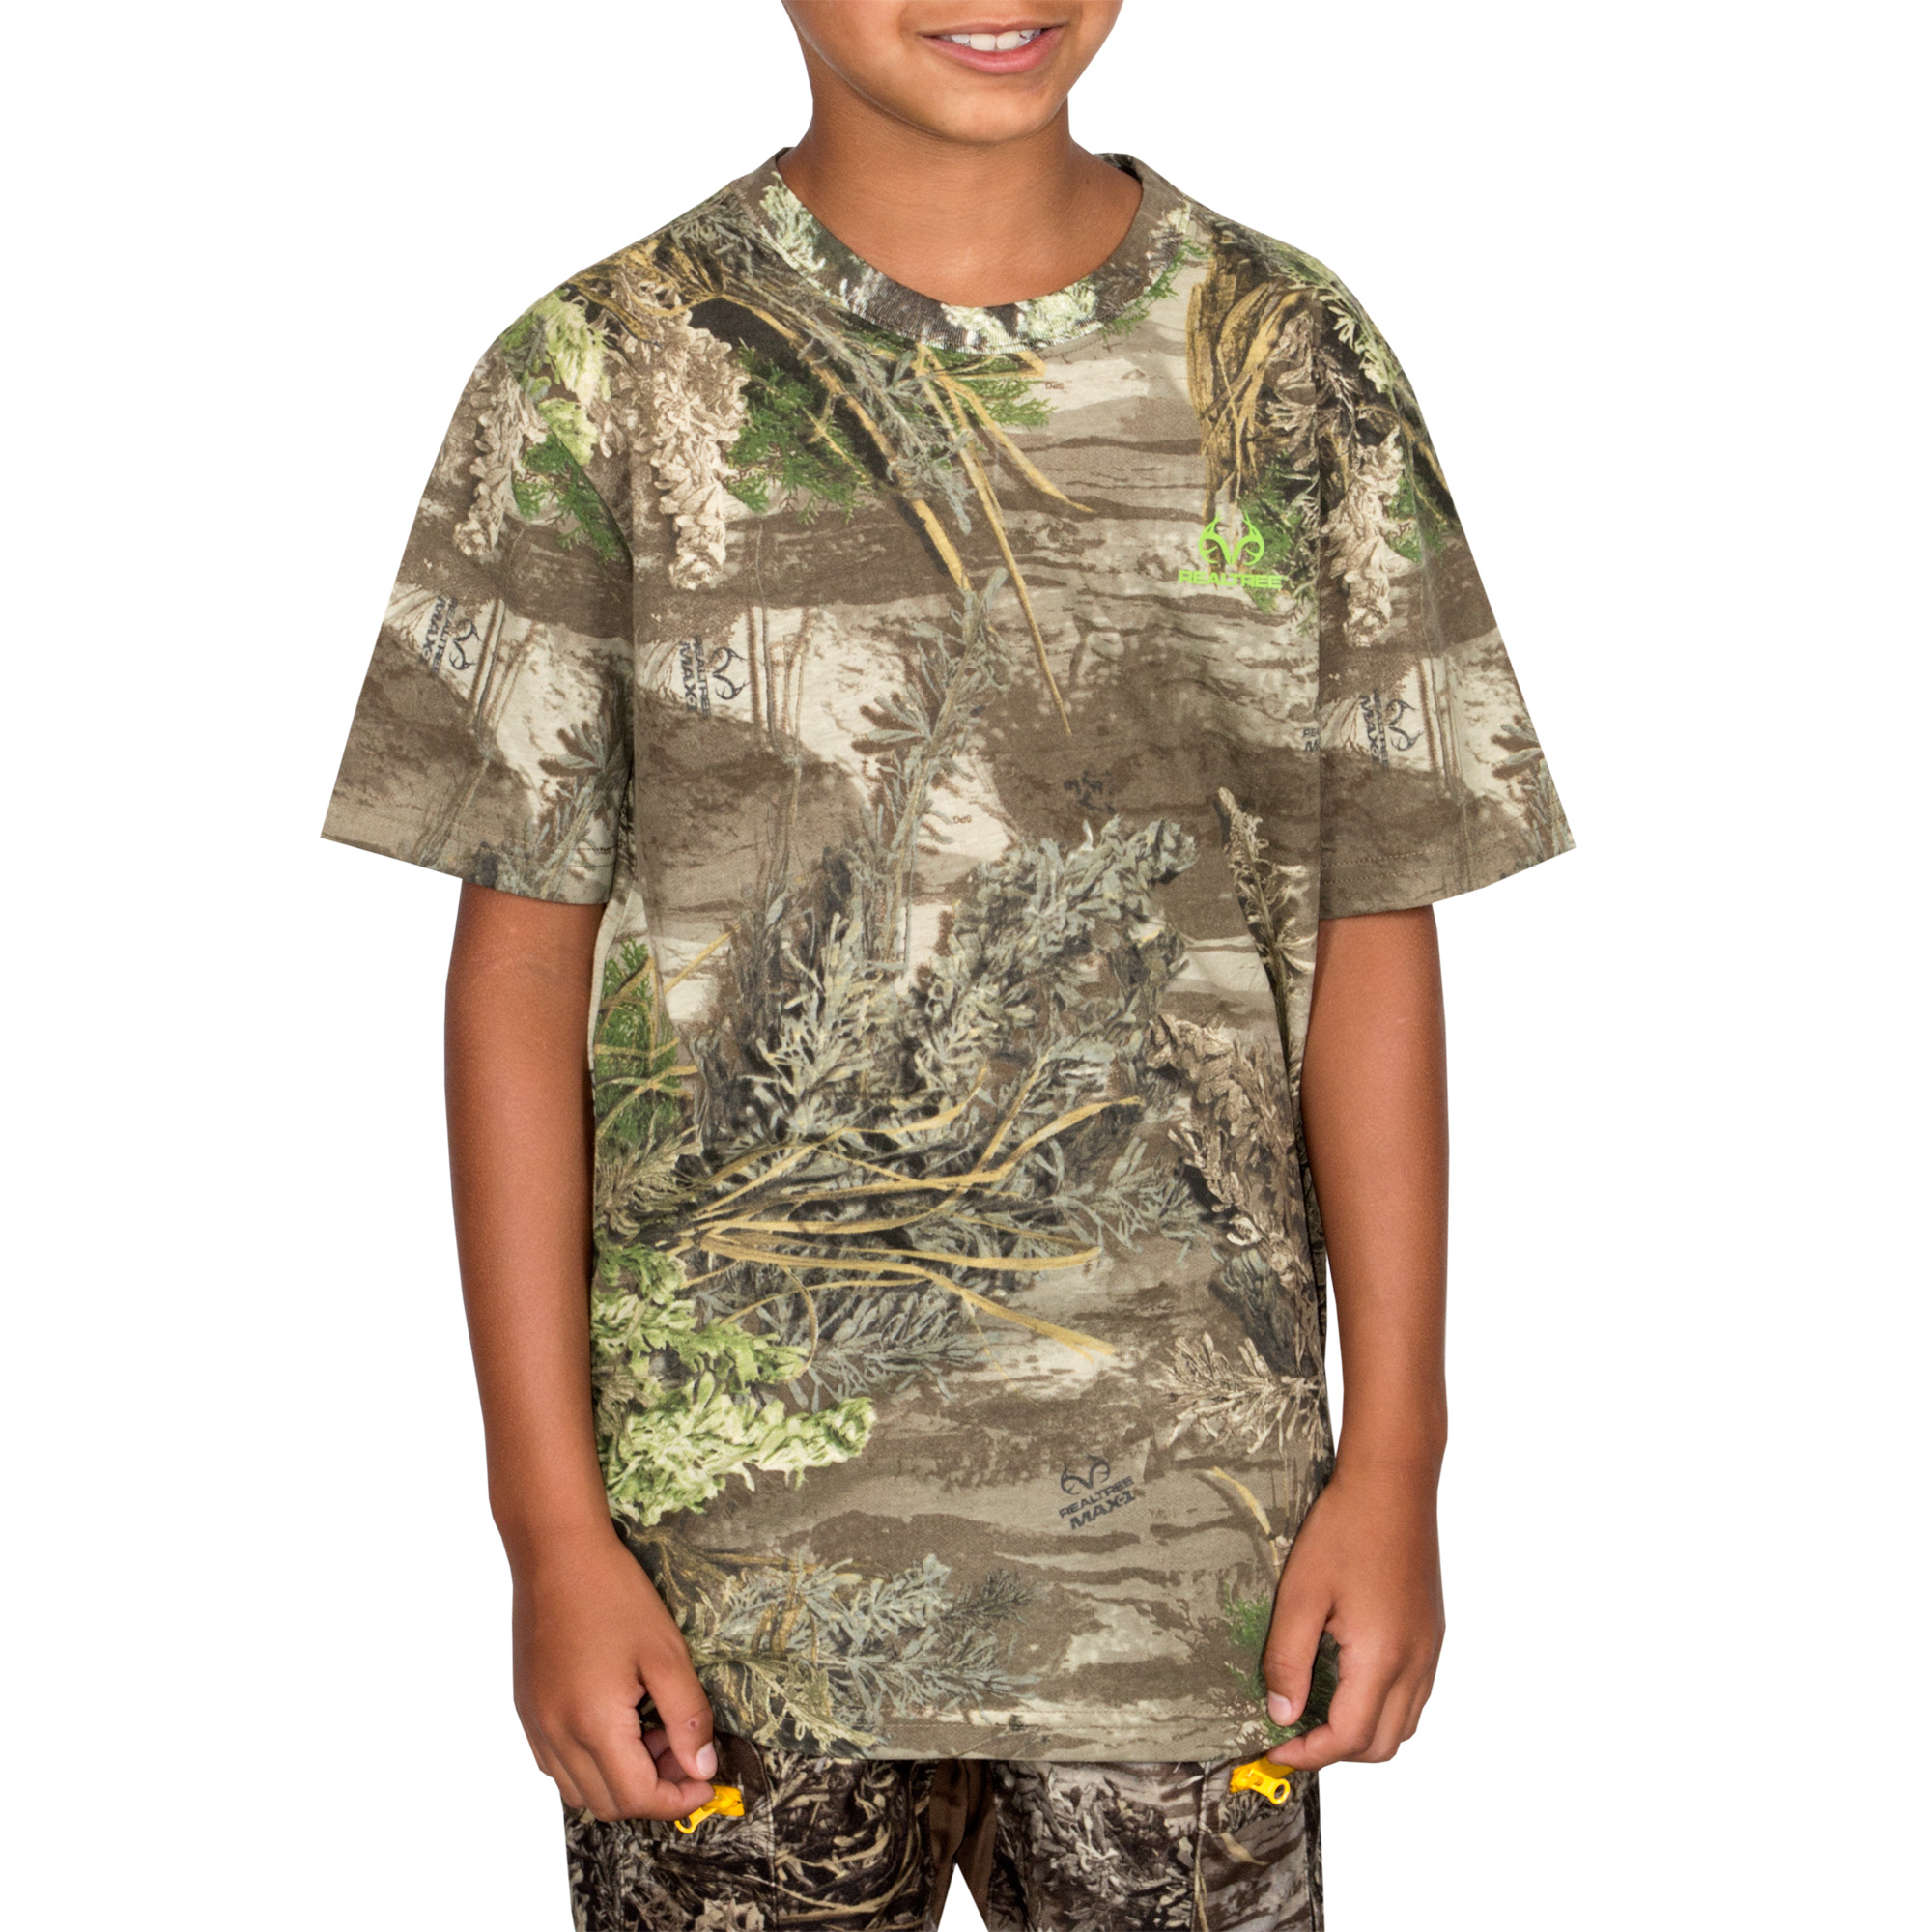 Youth Short Sleeve Camo Tee Realtree by Mahco Inc